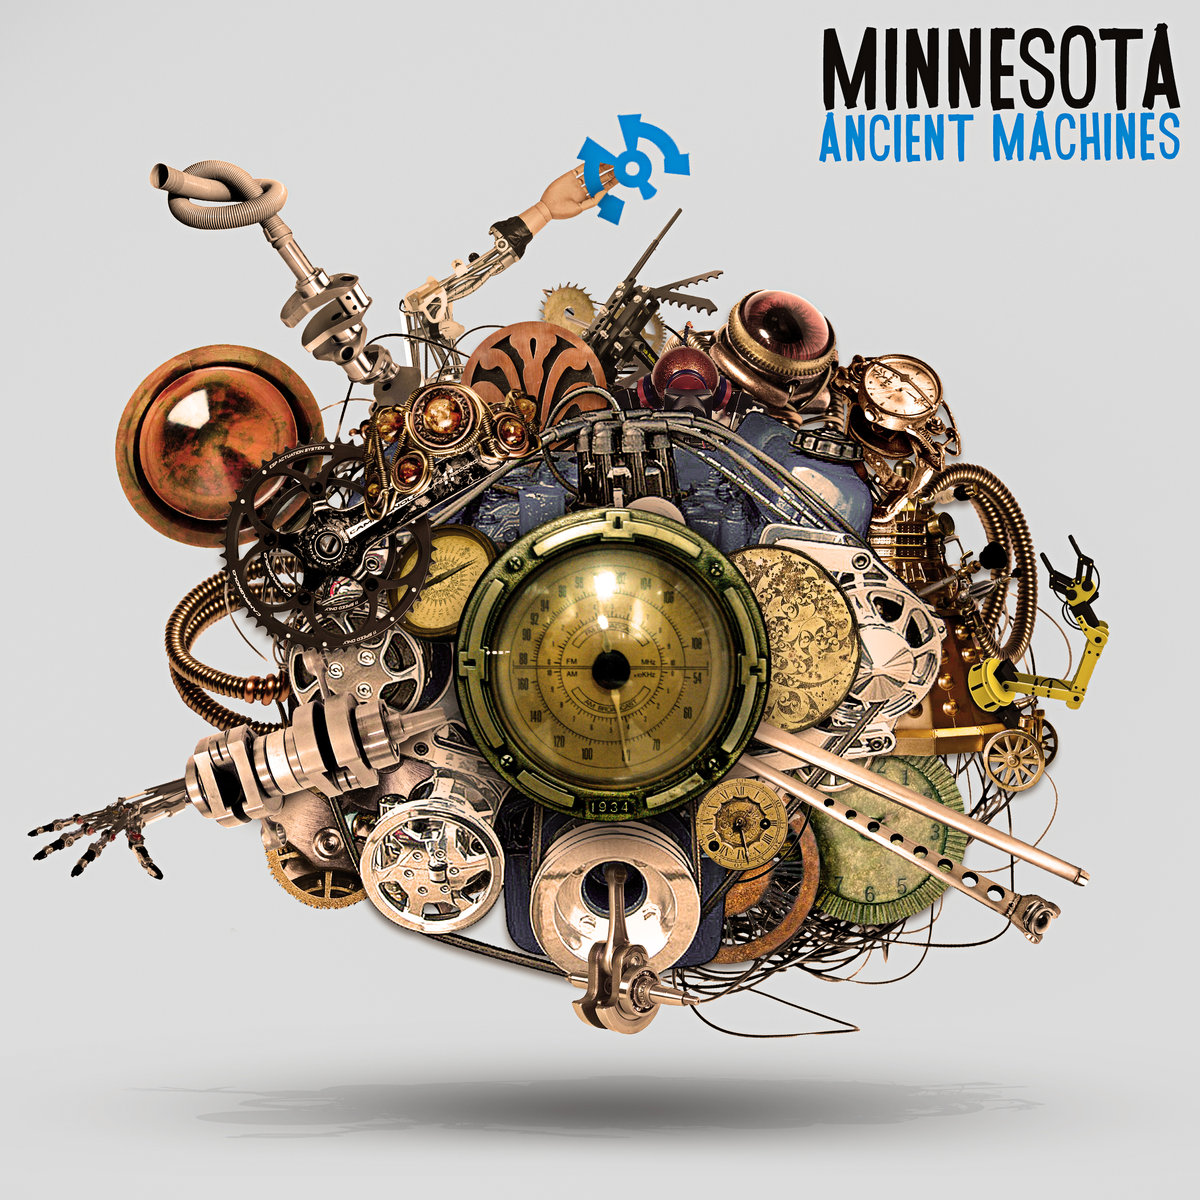 Minnesota - Ancient Machines